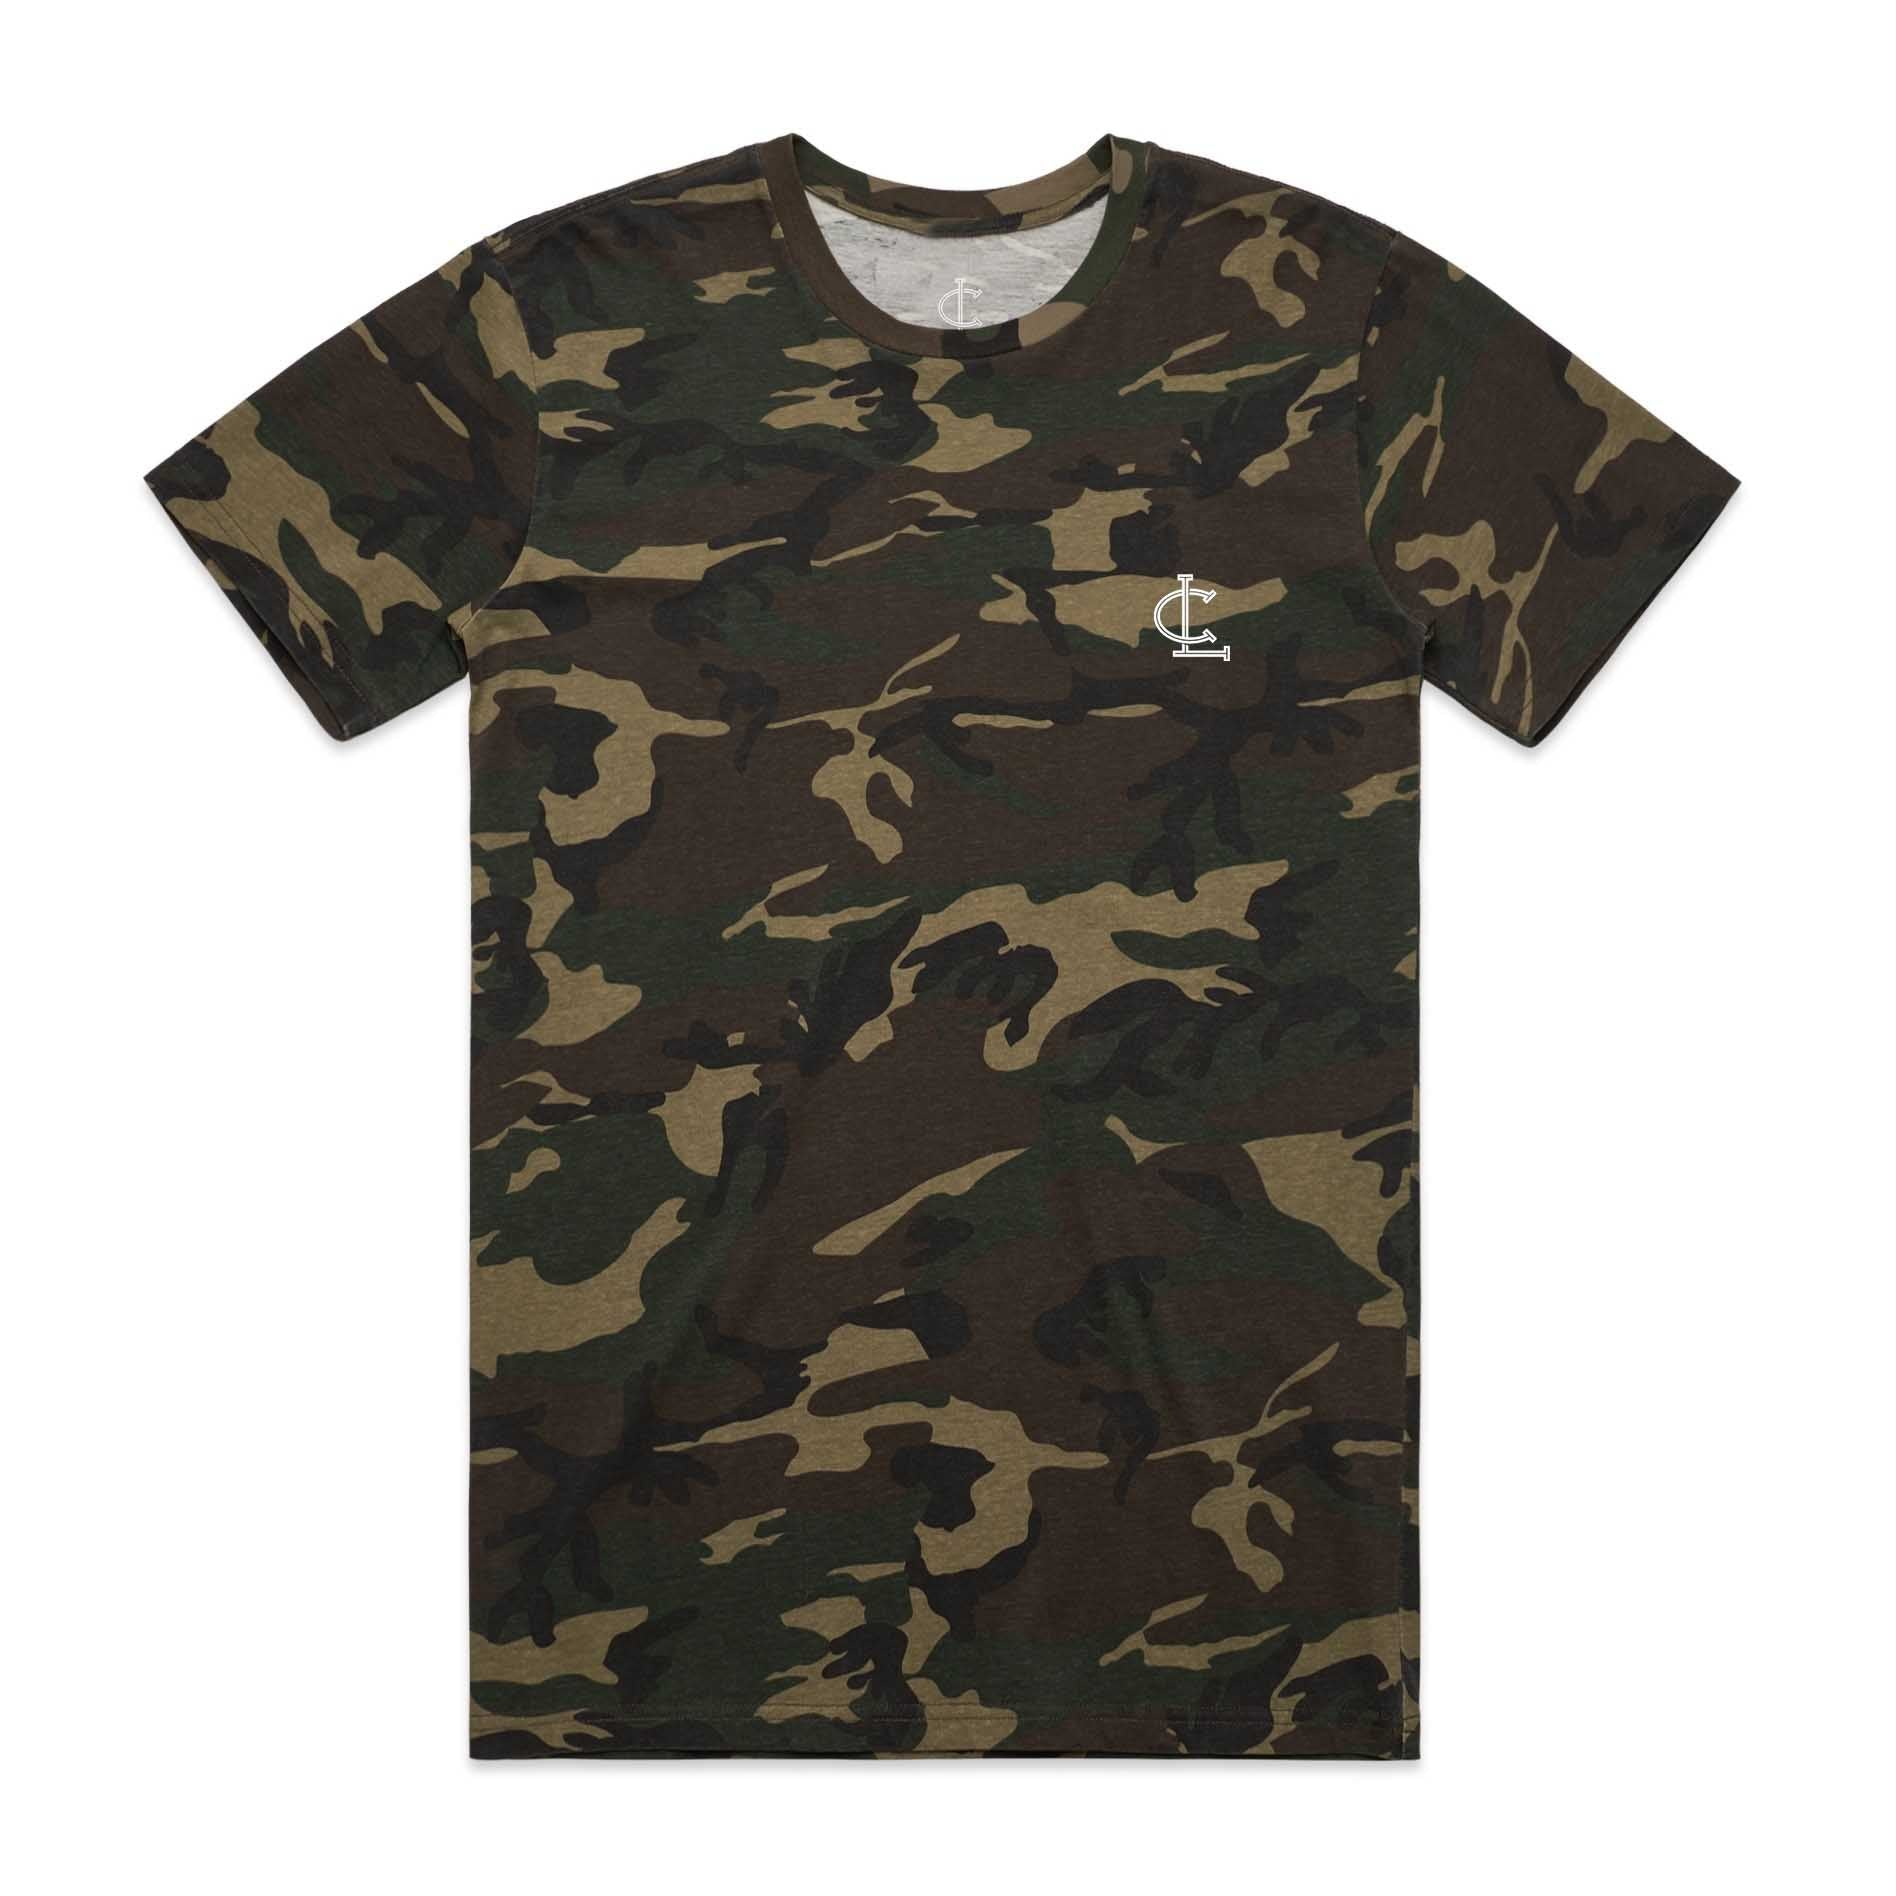 Staple Tee - Camo Green